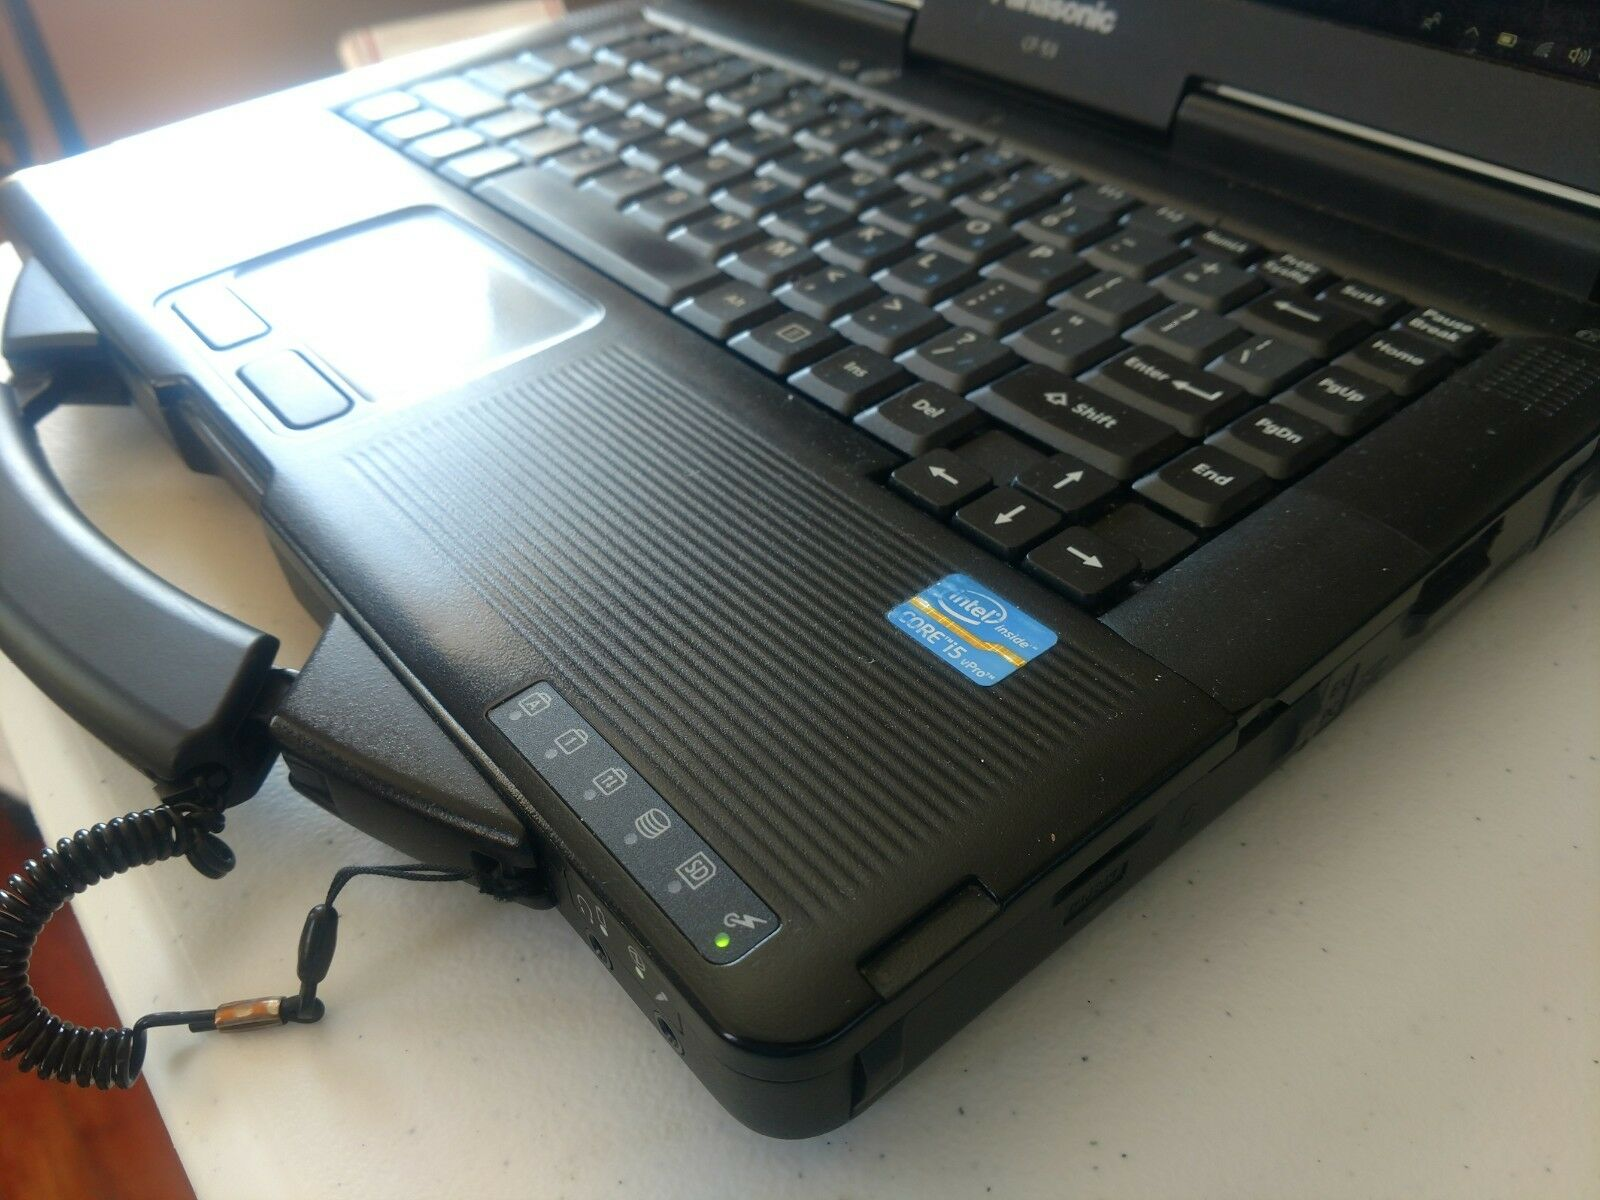 PANASONIC Toughbook CF-53 MK3 i5-3340M 2.7 8GB 250GB SSD Gobi TOUCHSCREEN Win 7